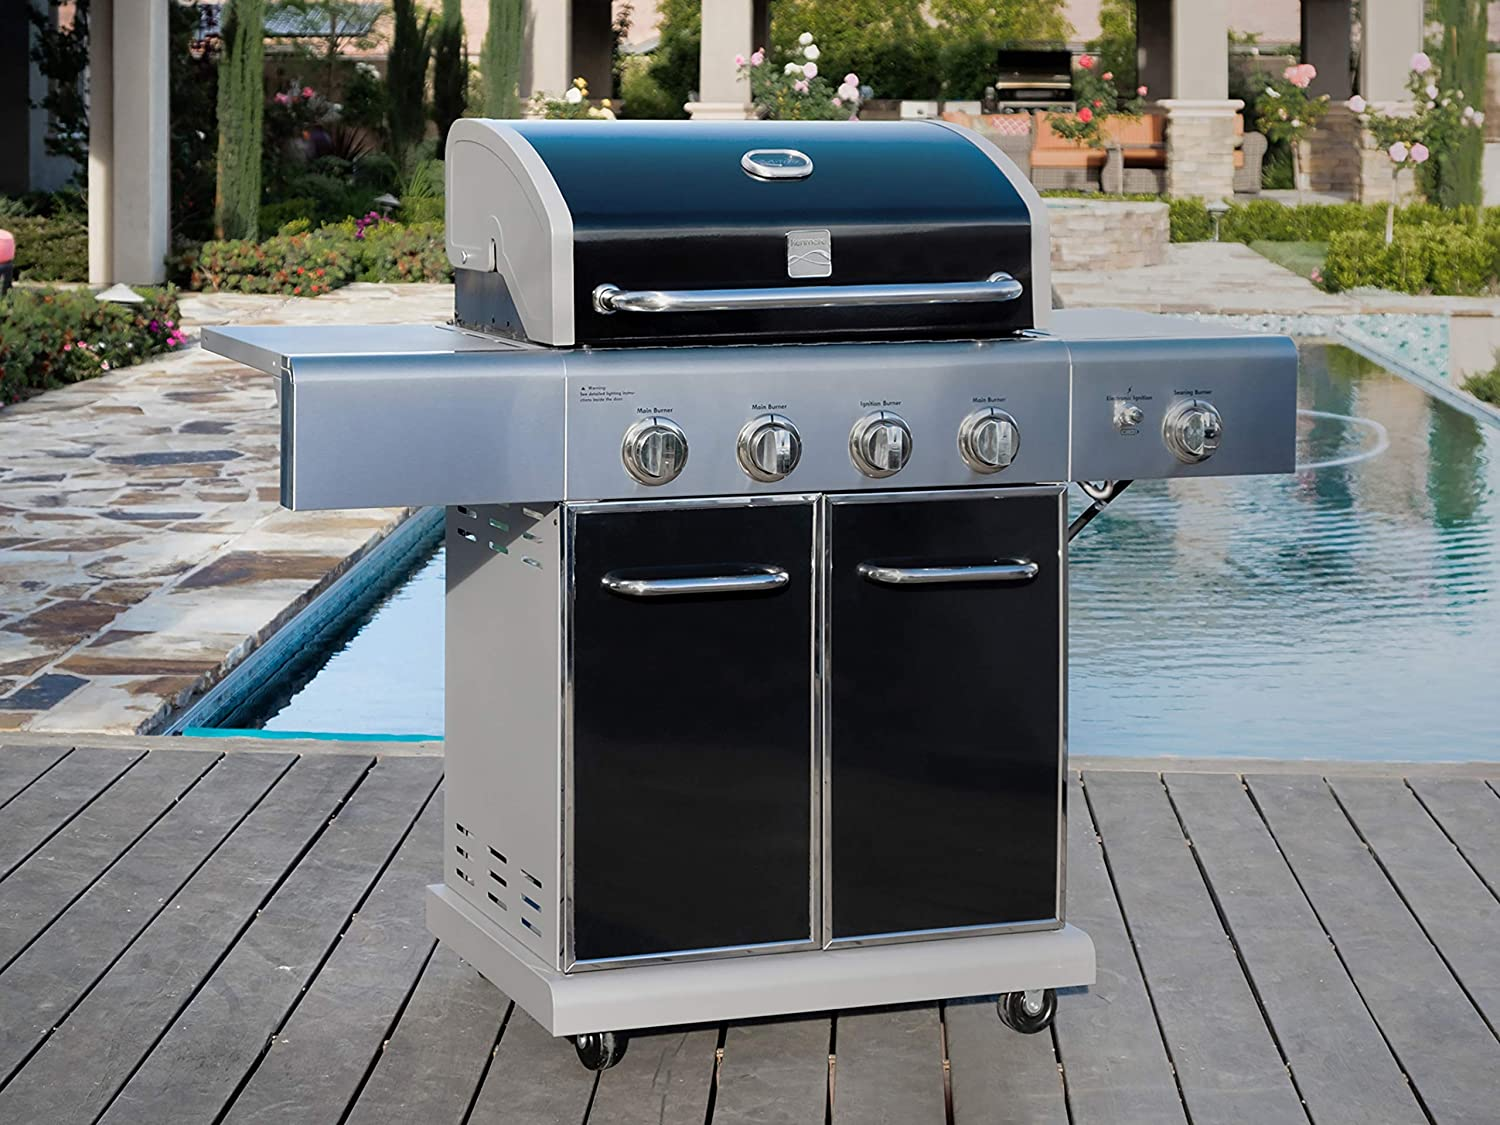 Are Kenmore Grills Made in the USA?